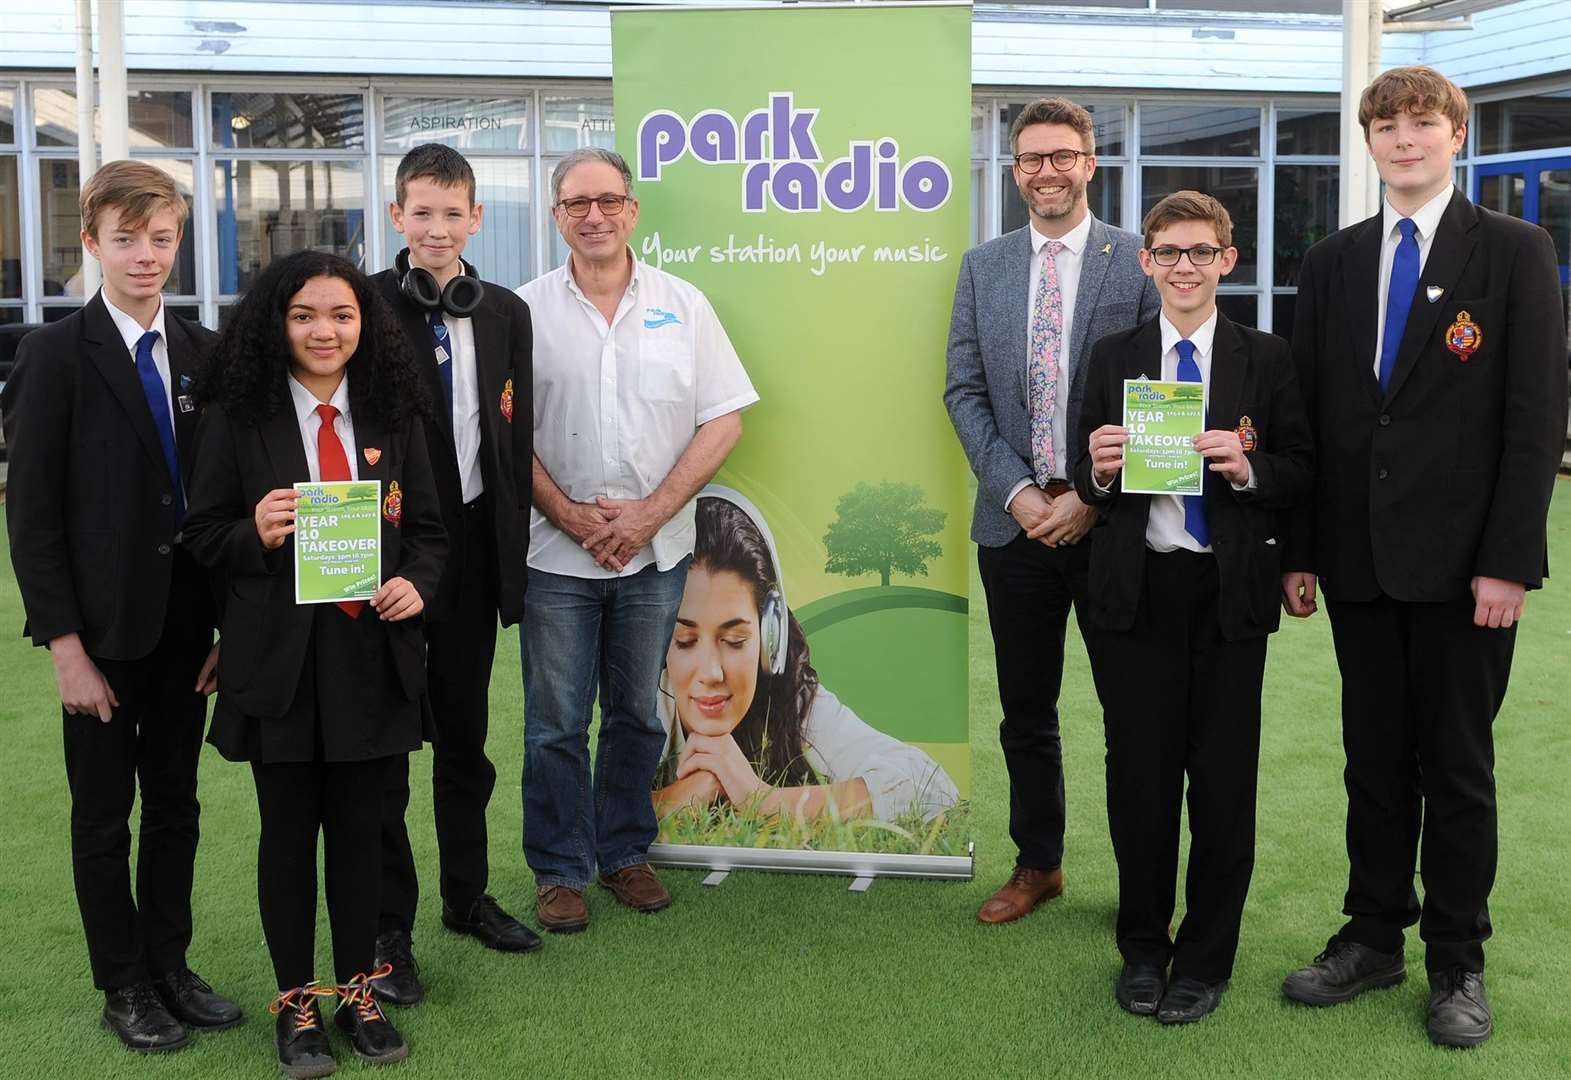 Students take to the air waves